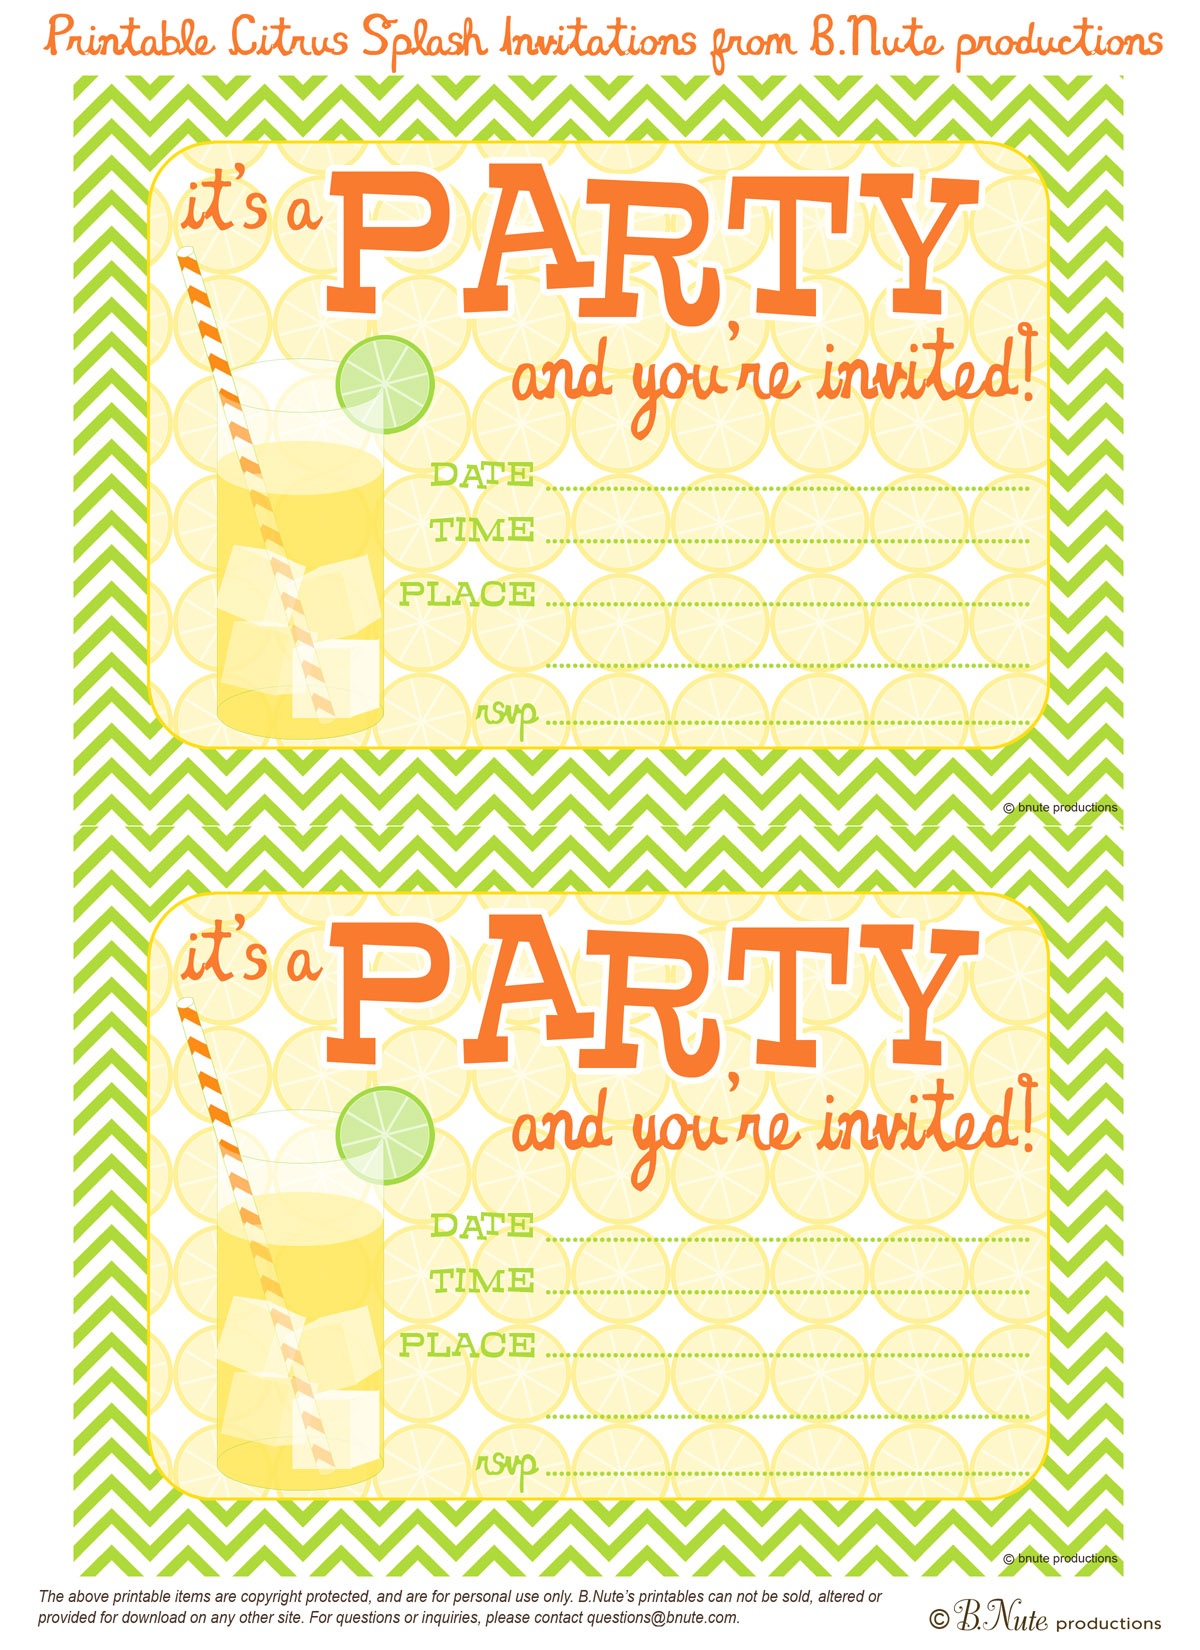 Party invitations printable free party invitations printable free party invitations printable free stopboris Gallery